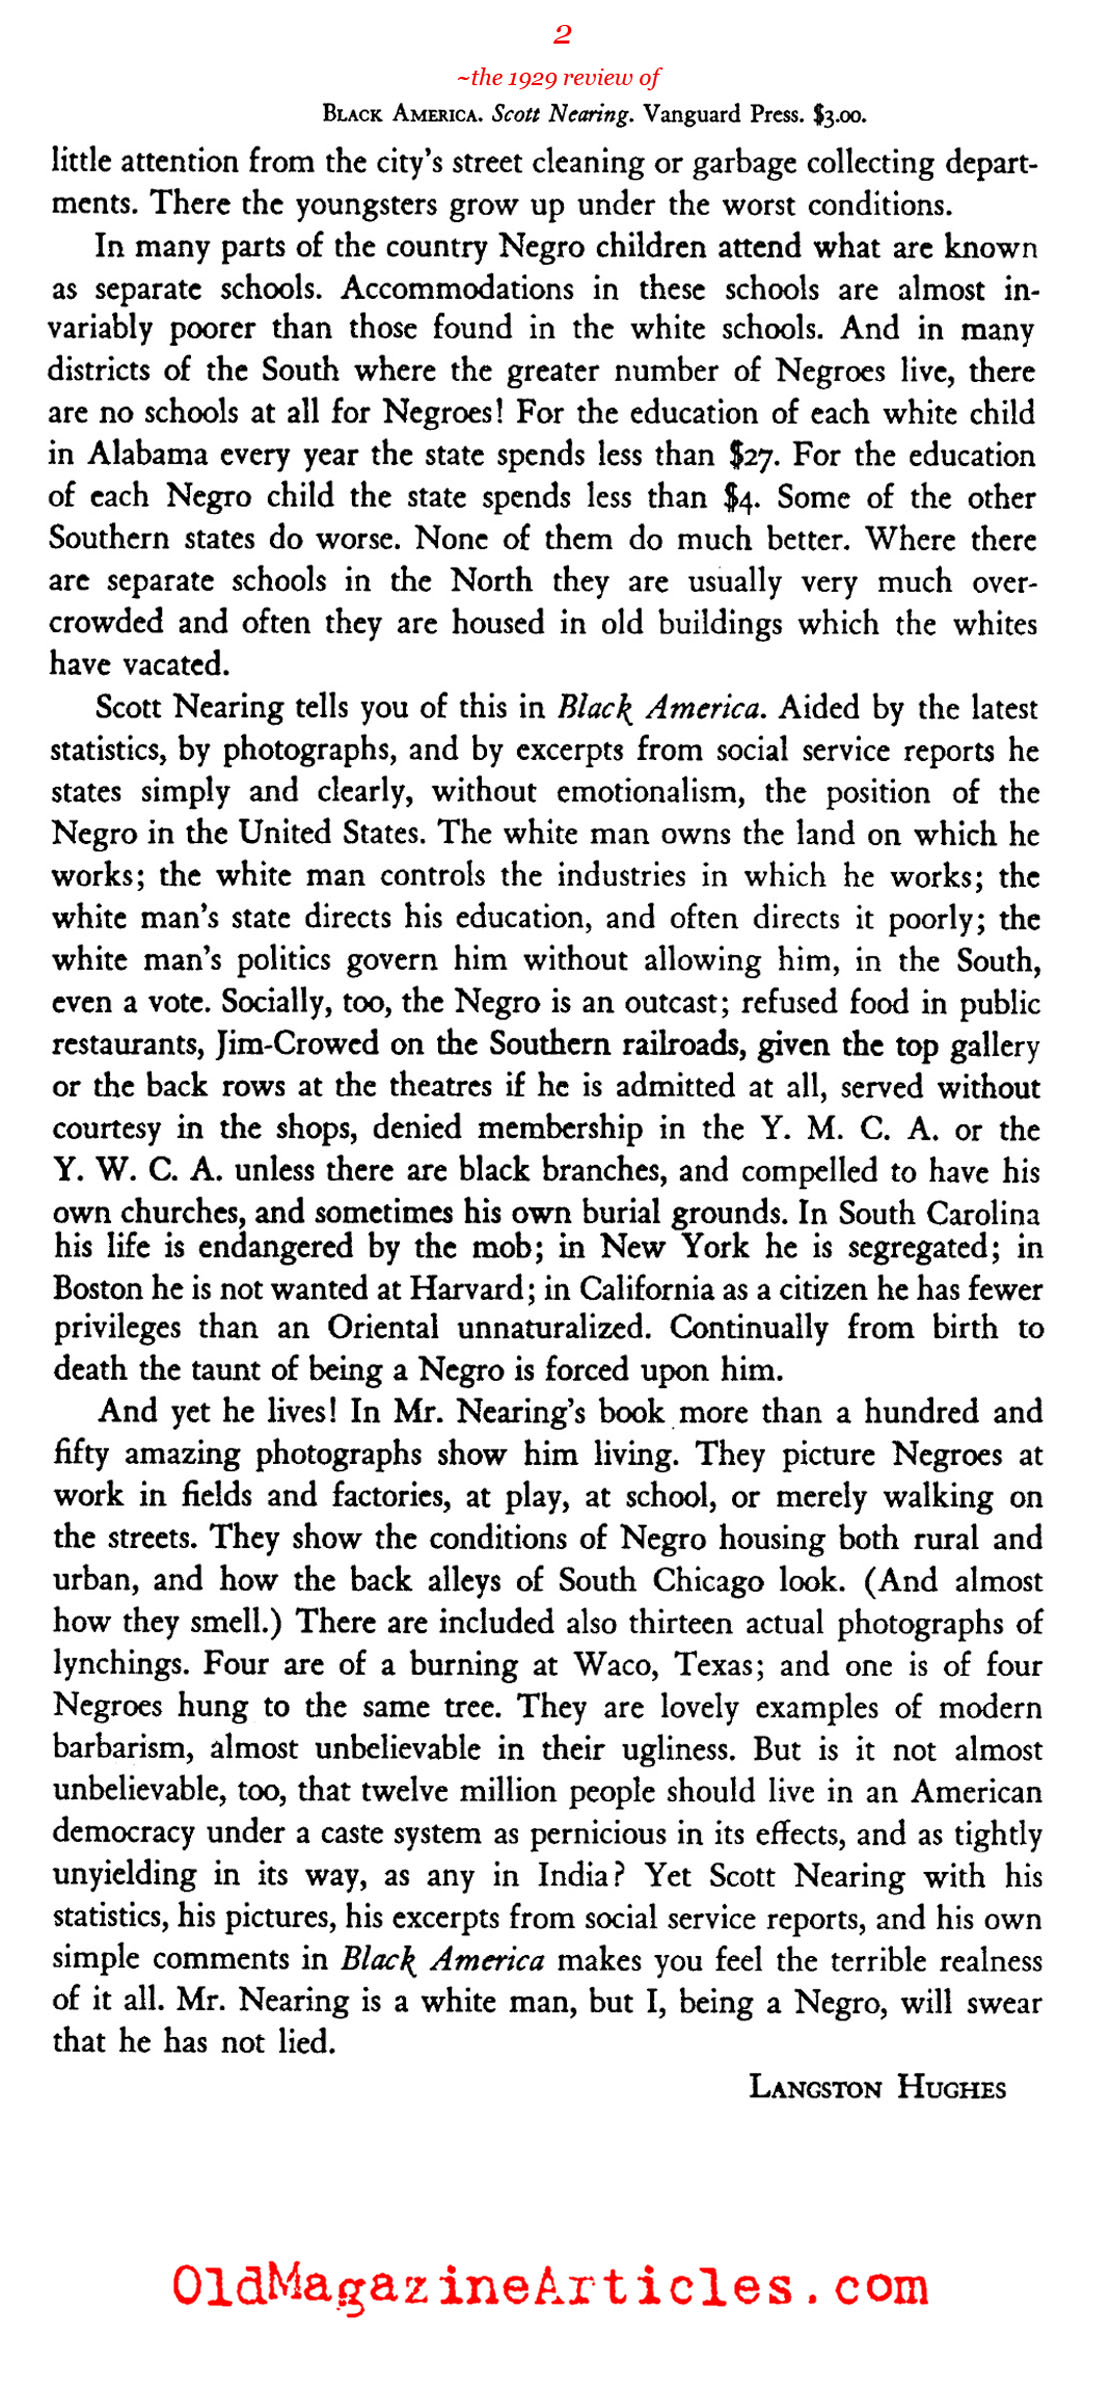 The State of African-Americans in 1929 (The Book League, 1929)